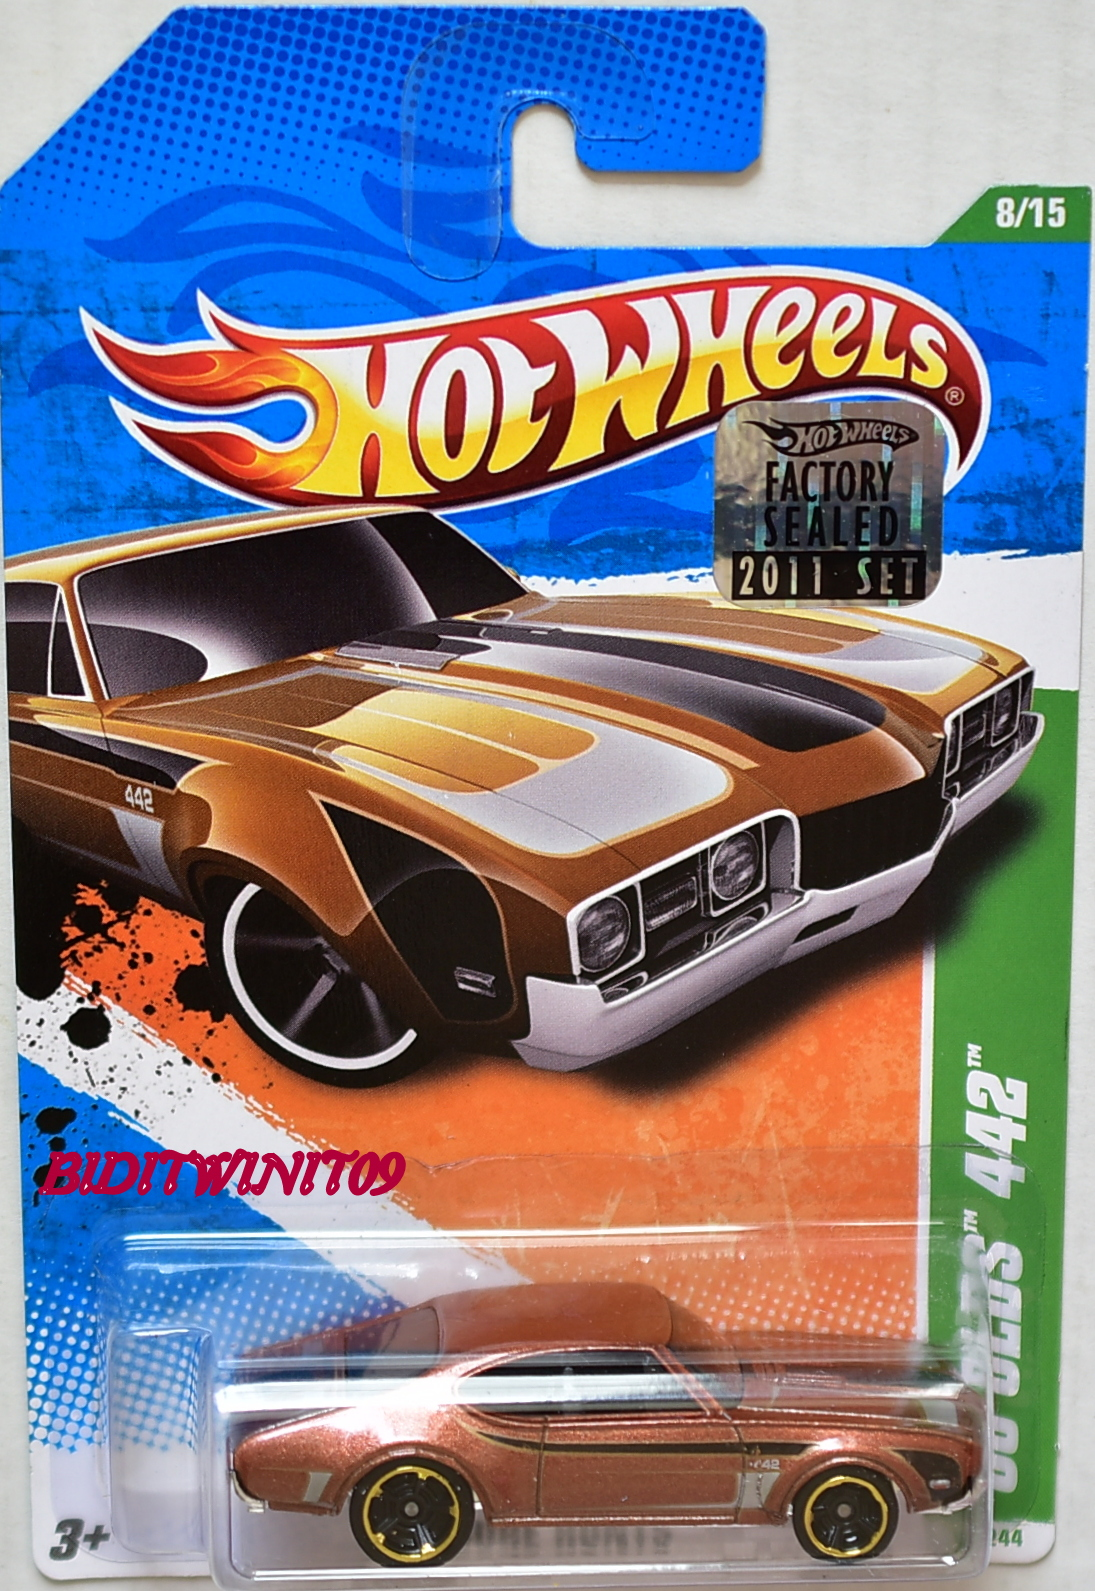 HOT WHEELS 2011 REGULAR TREASURE HUNT '68 OLDS 442 FACTORY SEALED